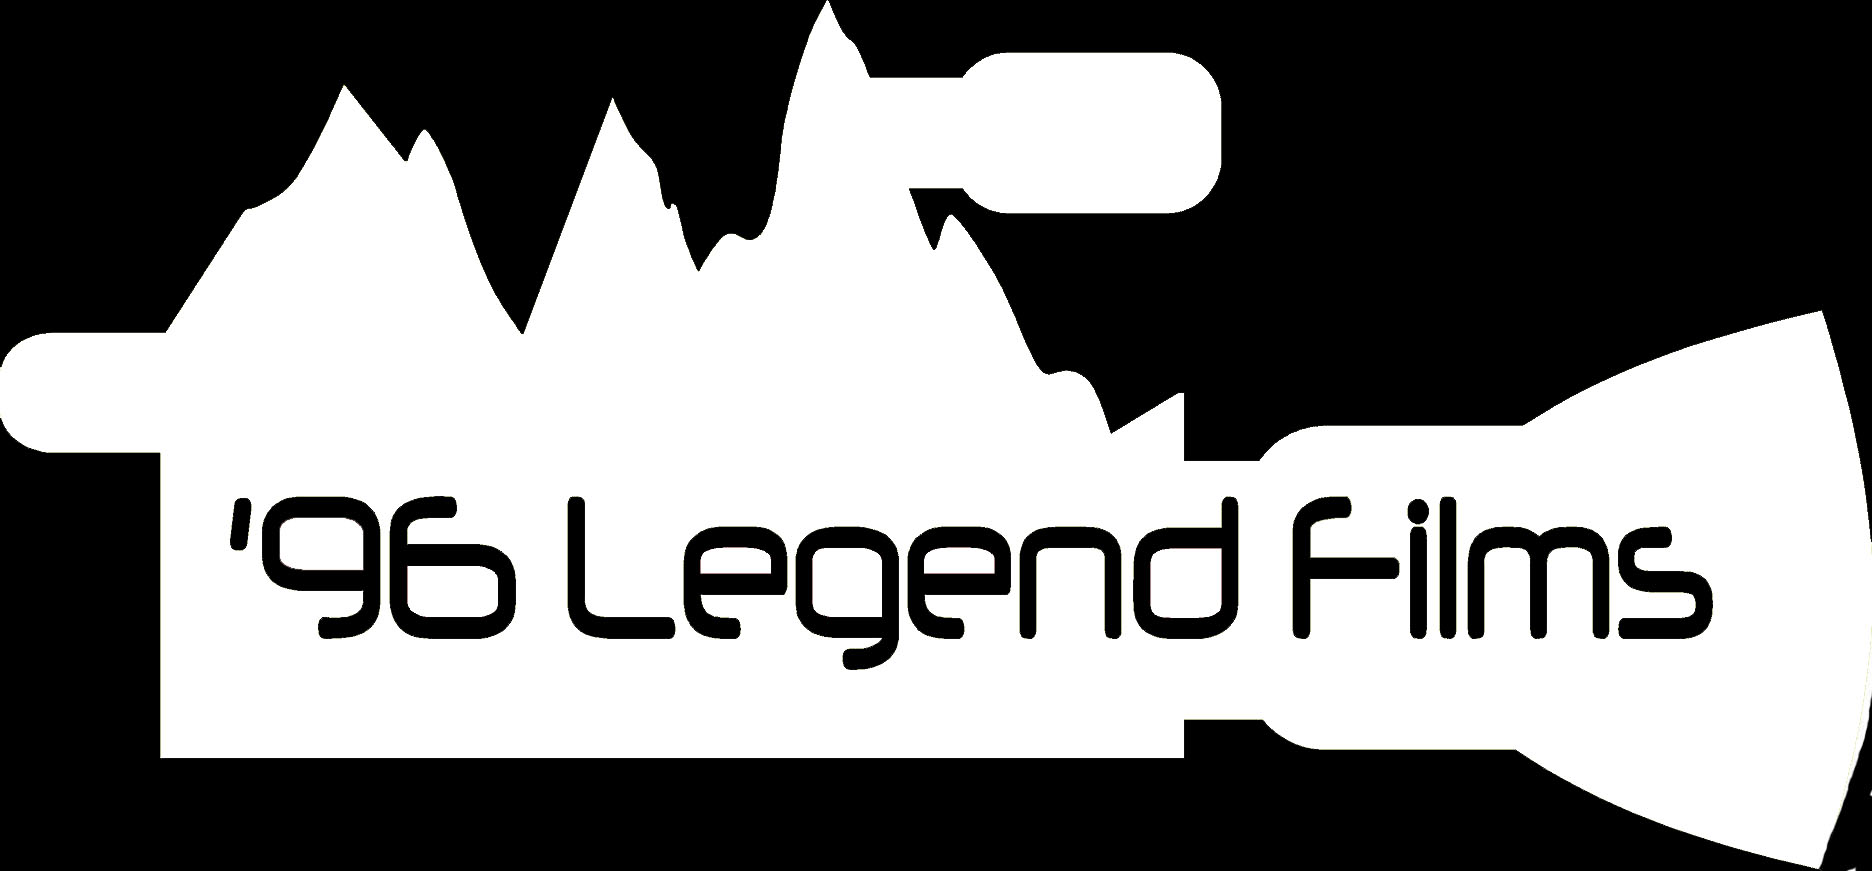 96 Legend Films Logo